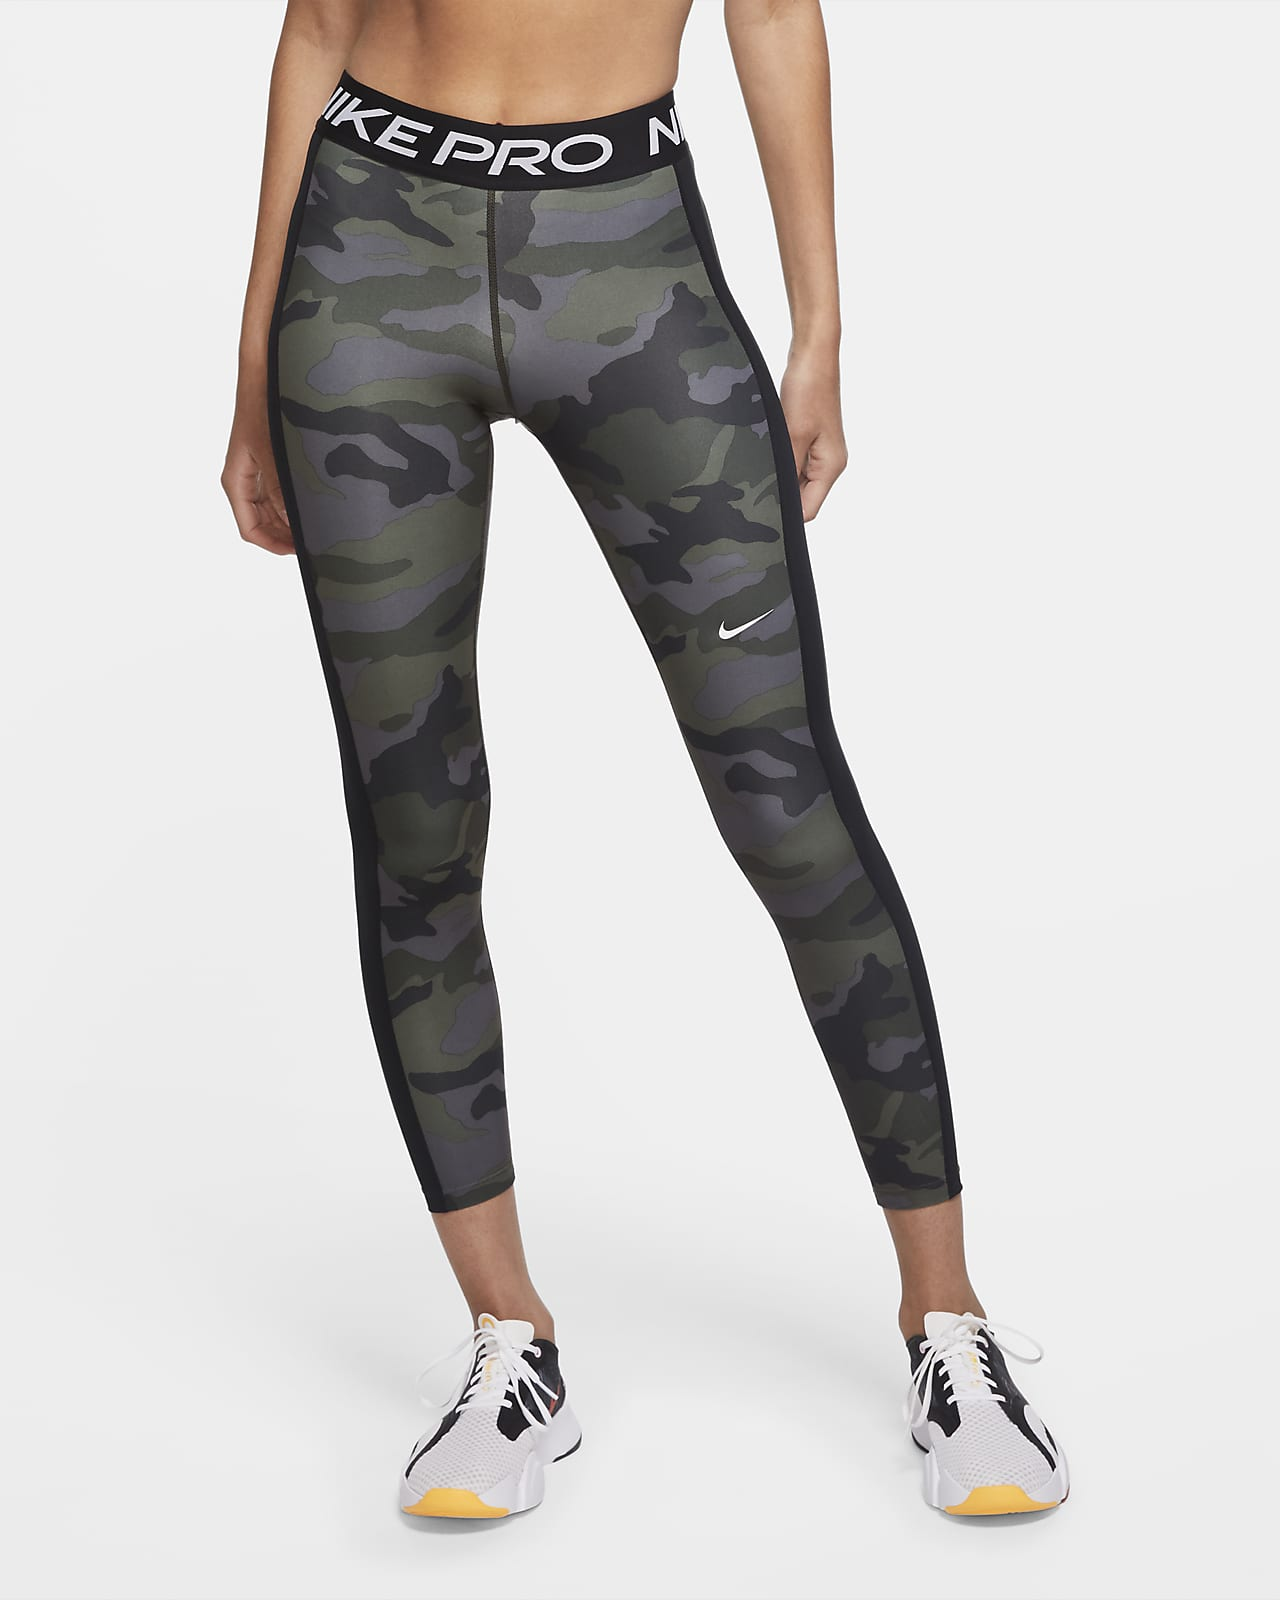 Nike Pro Women's 7/8 Camo Leggings